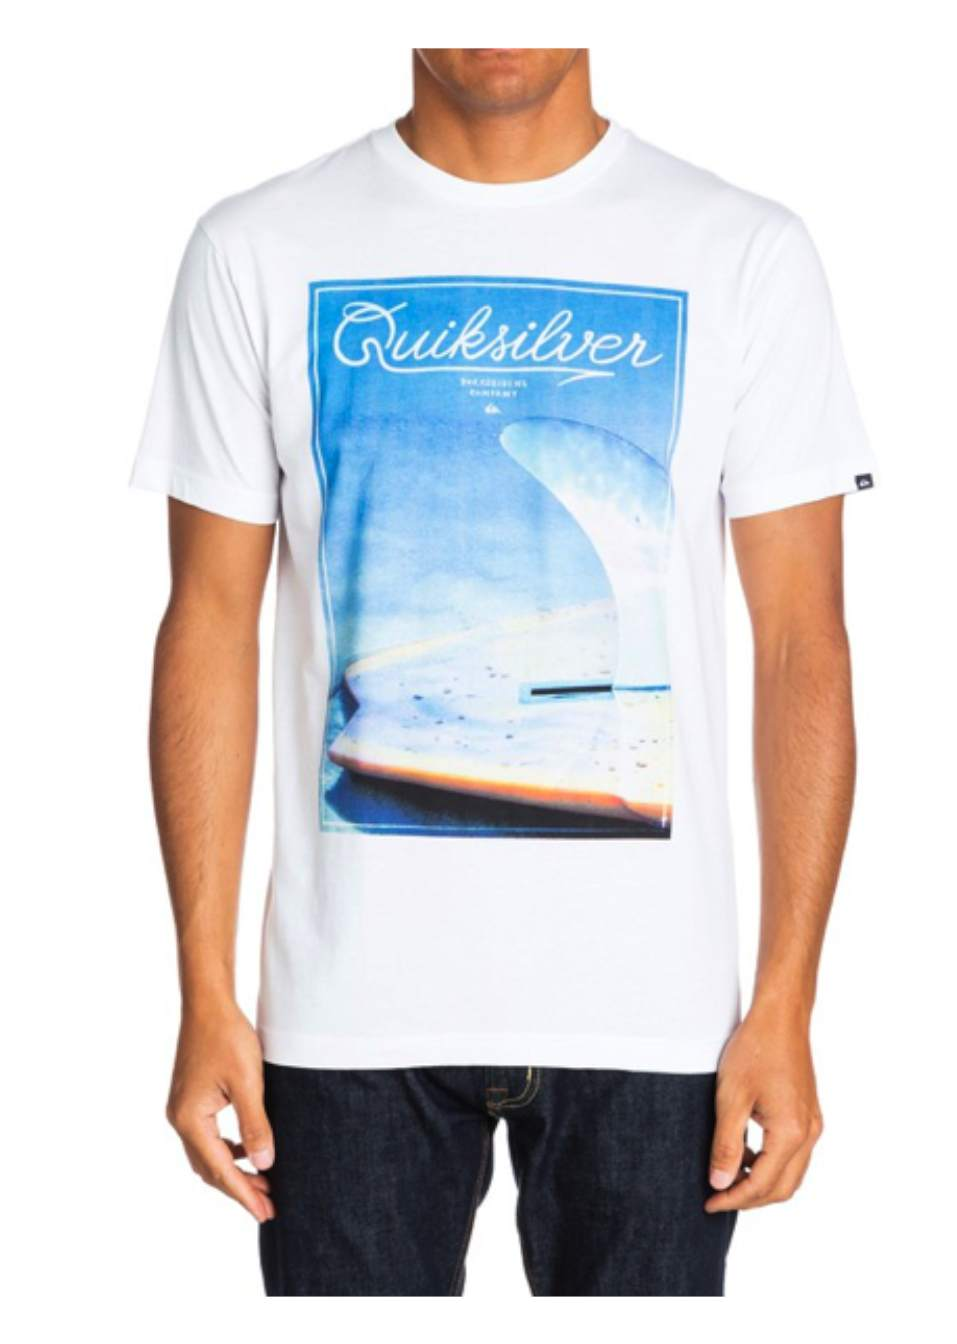 QUIKSILVER TSHIRT CLASSIC FINBOX - LM BOARD STORE